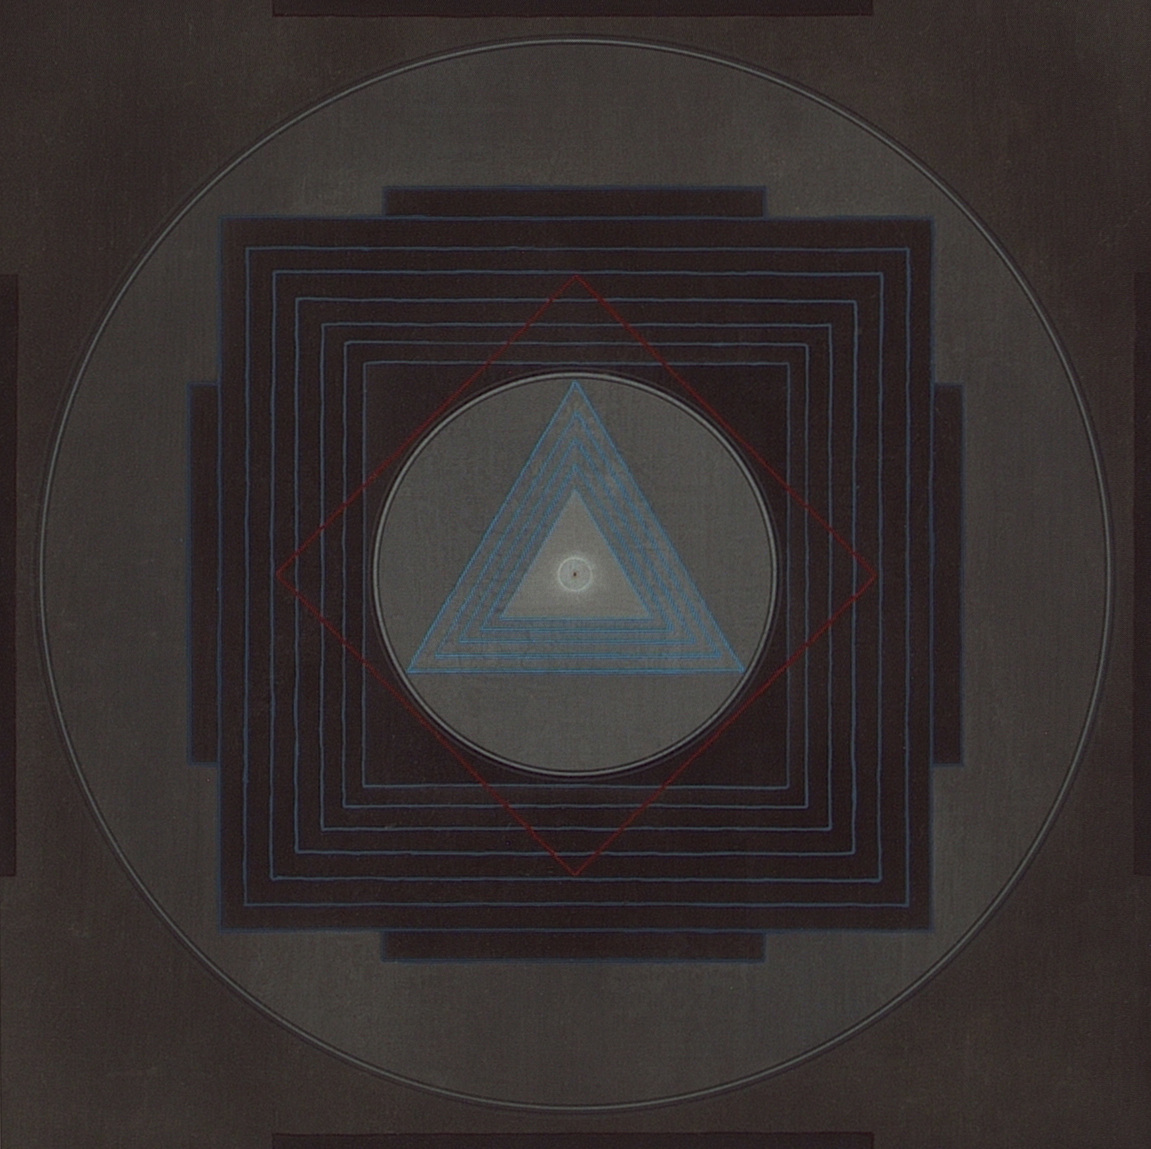 Yantra-ipsum-ipsum(2) 1998, acrylic, on wood, 11 13/16 x 11 13/16 in. [30x30cm]